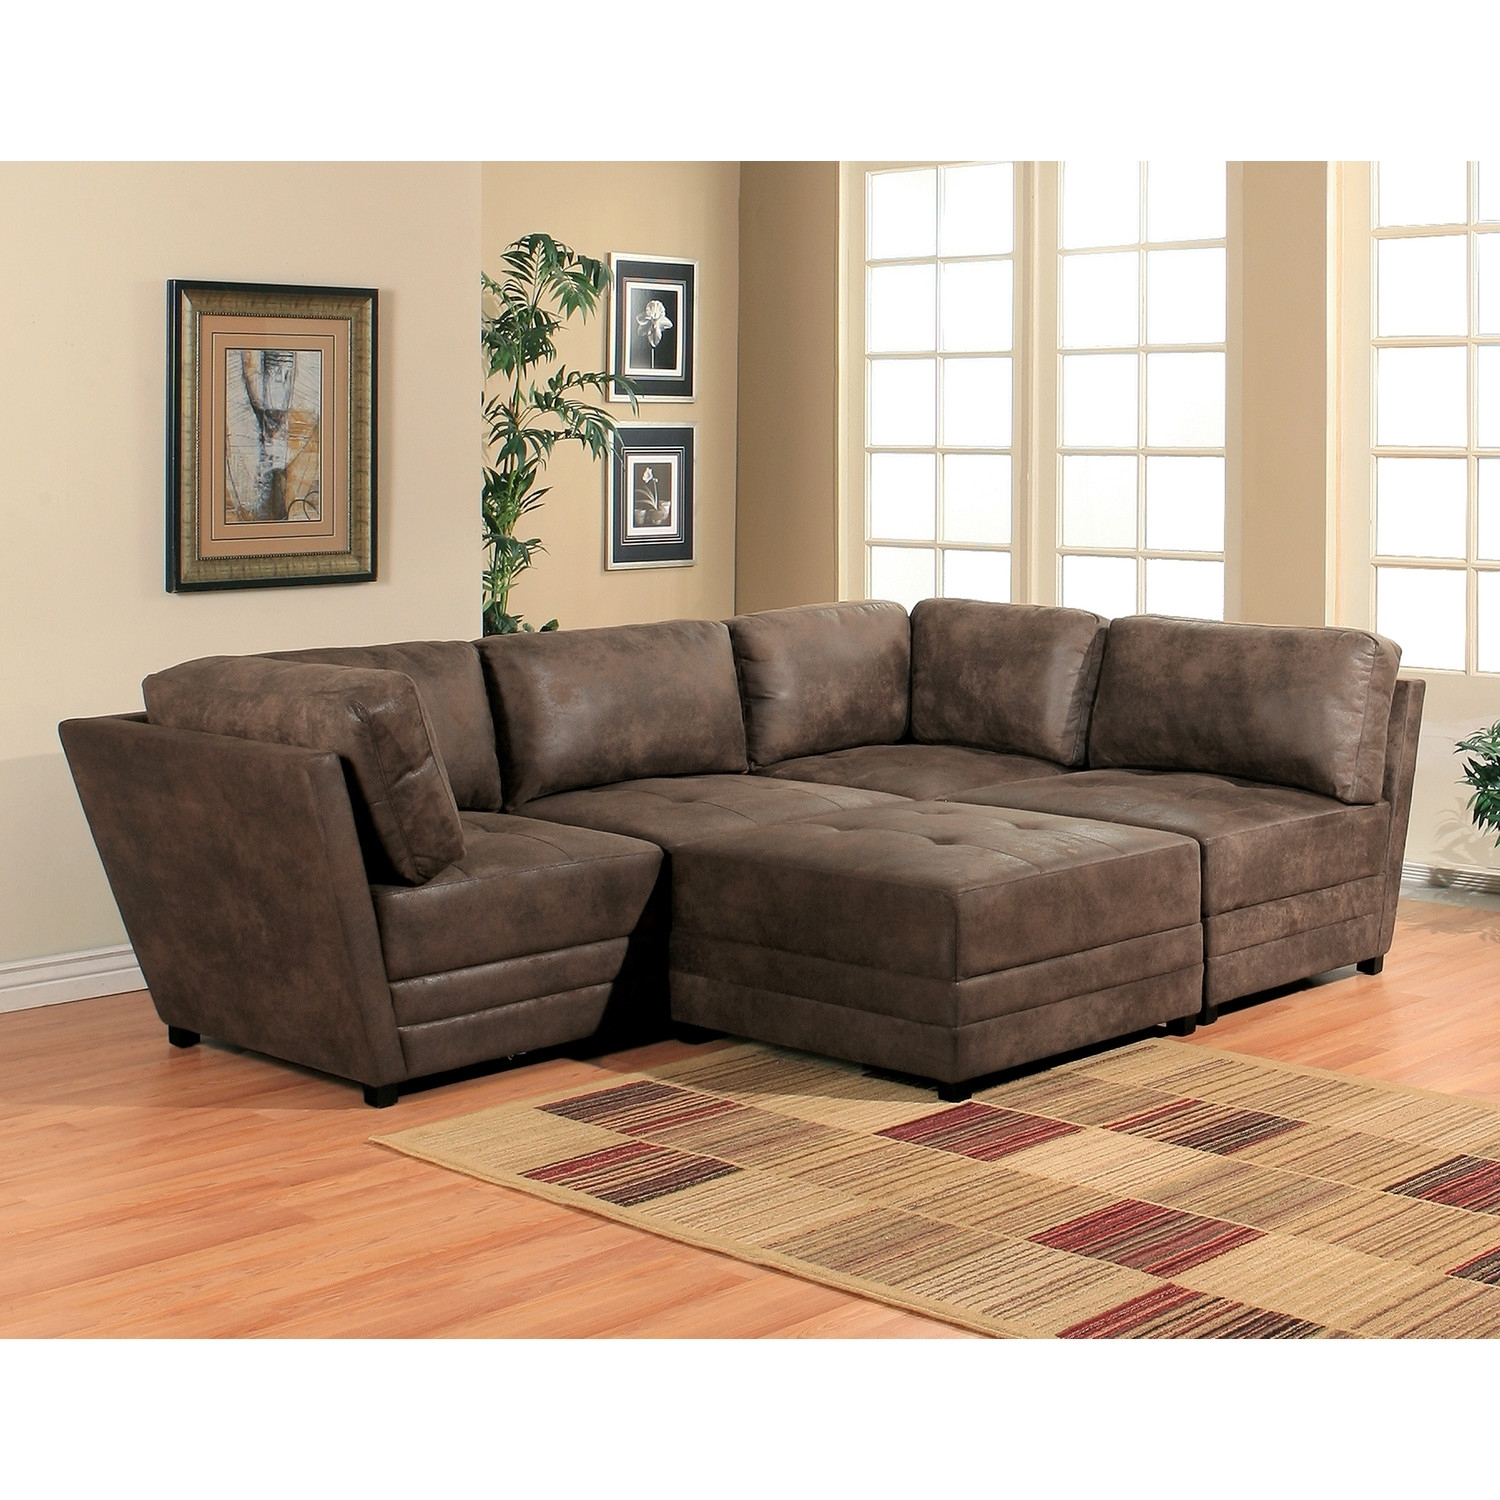 Lovely Sectional Sofas Tucson 78 About Remodel Gray Modular Intended For  Tucson Sectional Sofas (Image